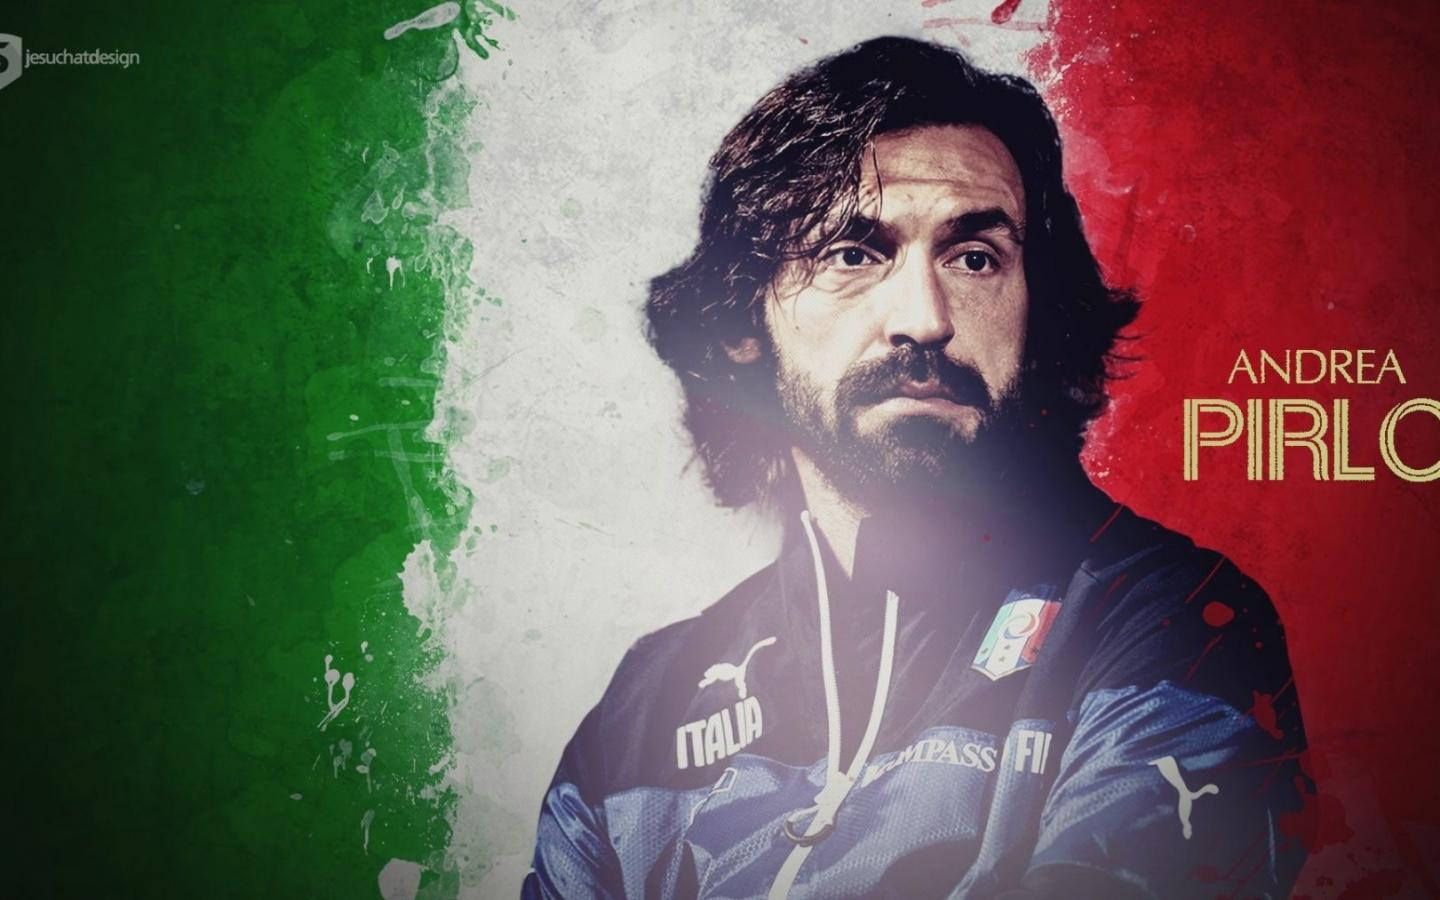 1440x900 - Andrea Pirlo Wallpapers 21